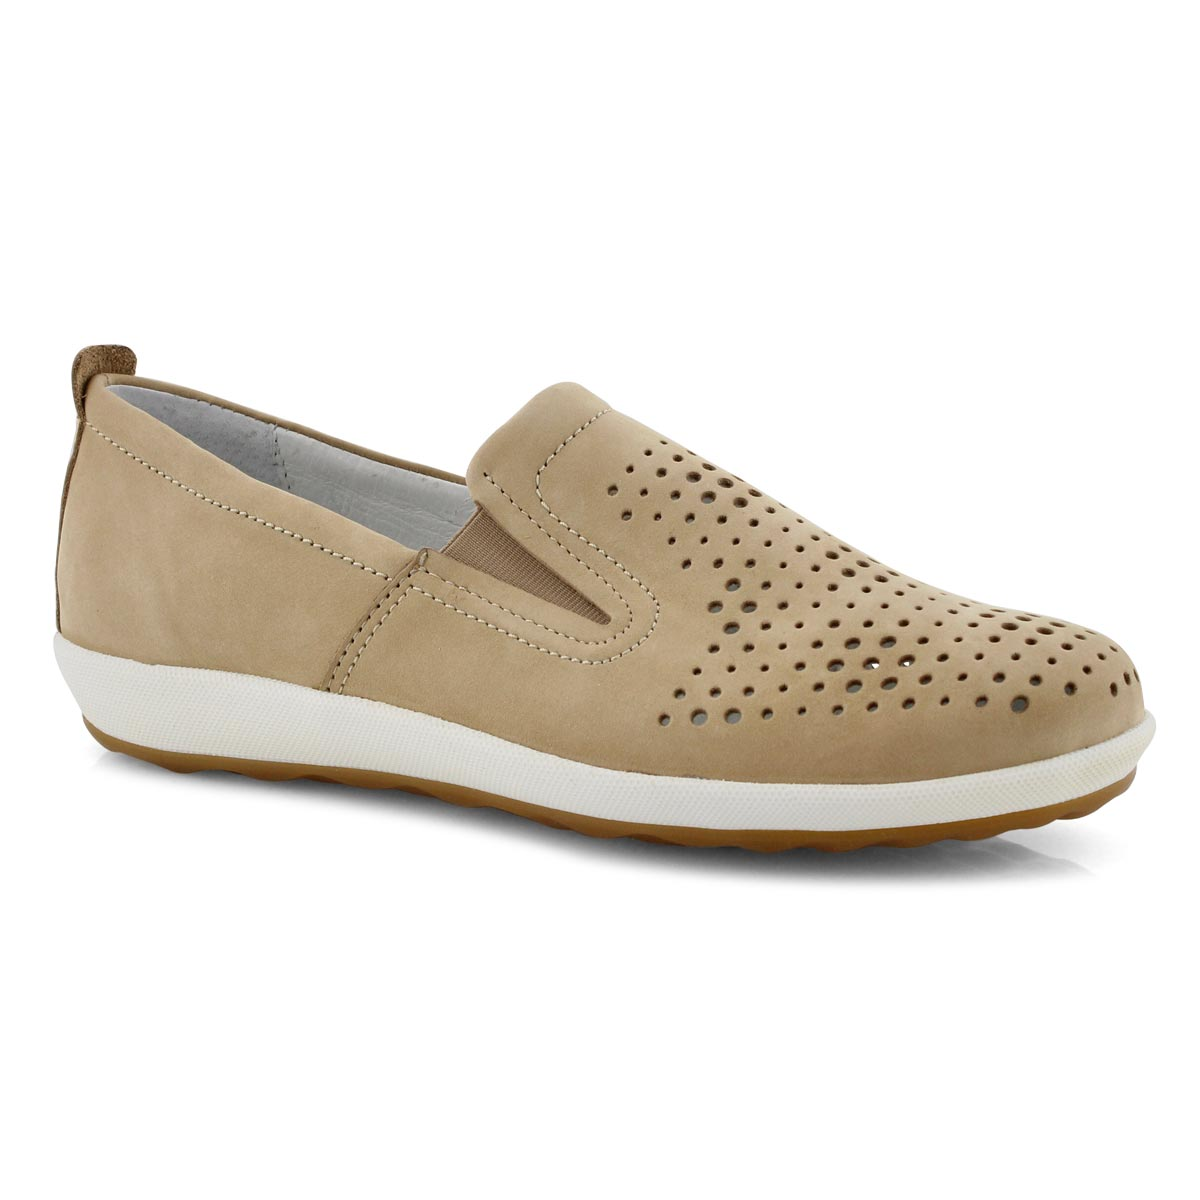 Lds Viola 07 nature casual slip on shoes